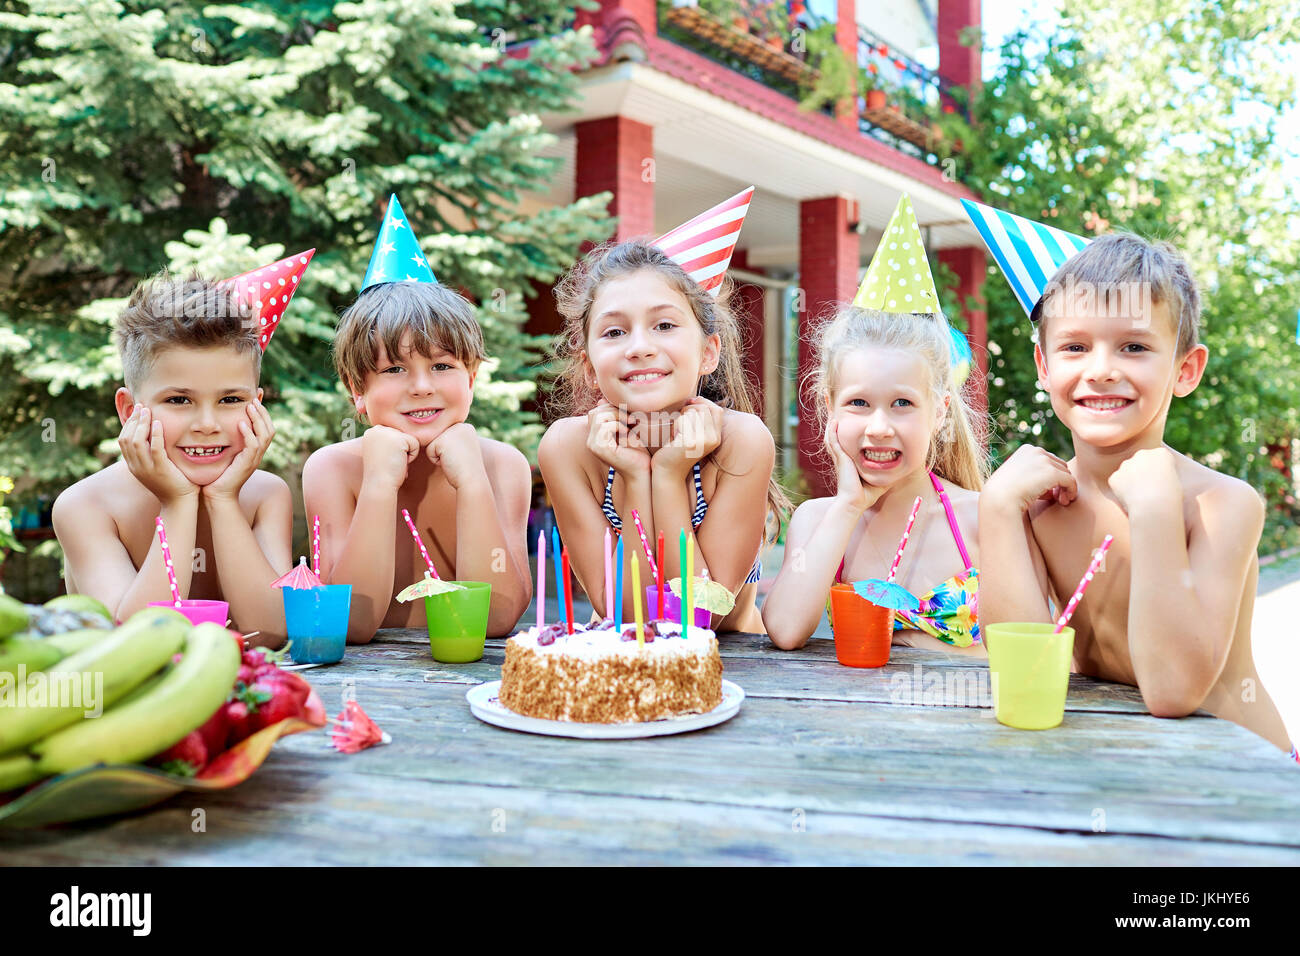 A group of children in swimsuits celebrates a birthday in the su - Stock Image